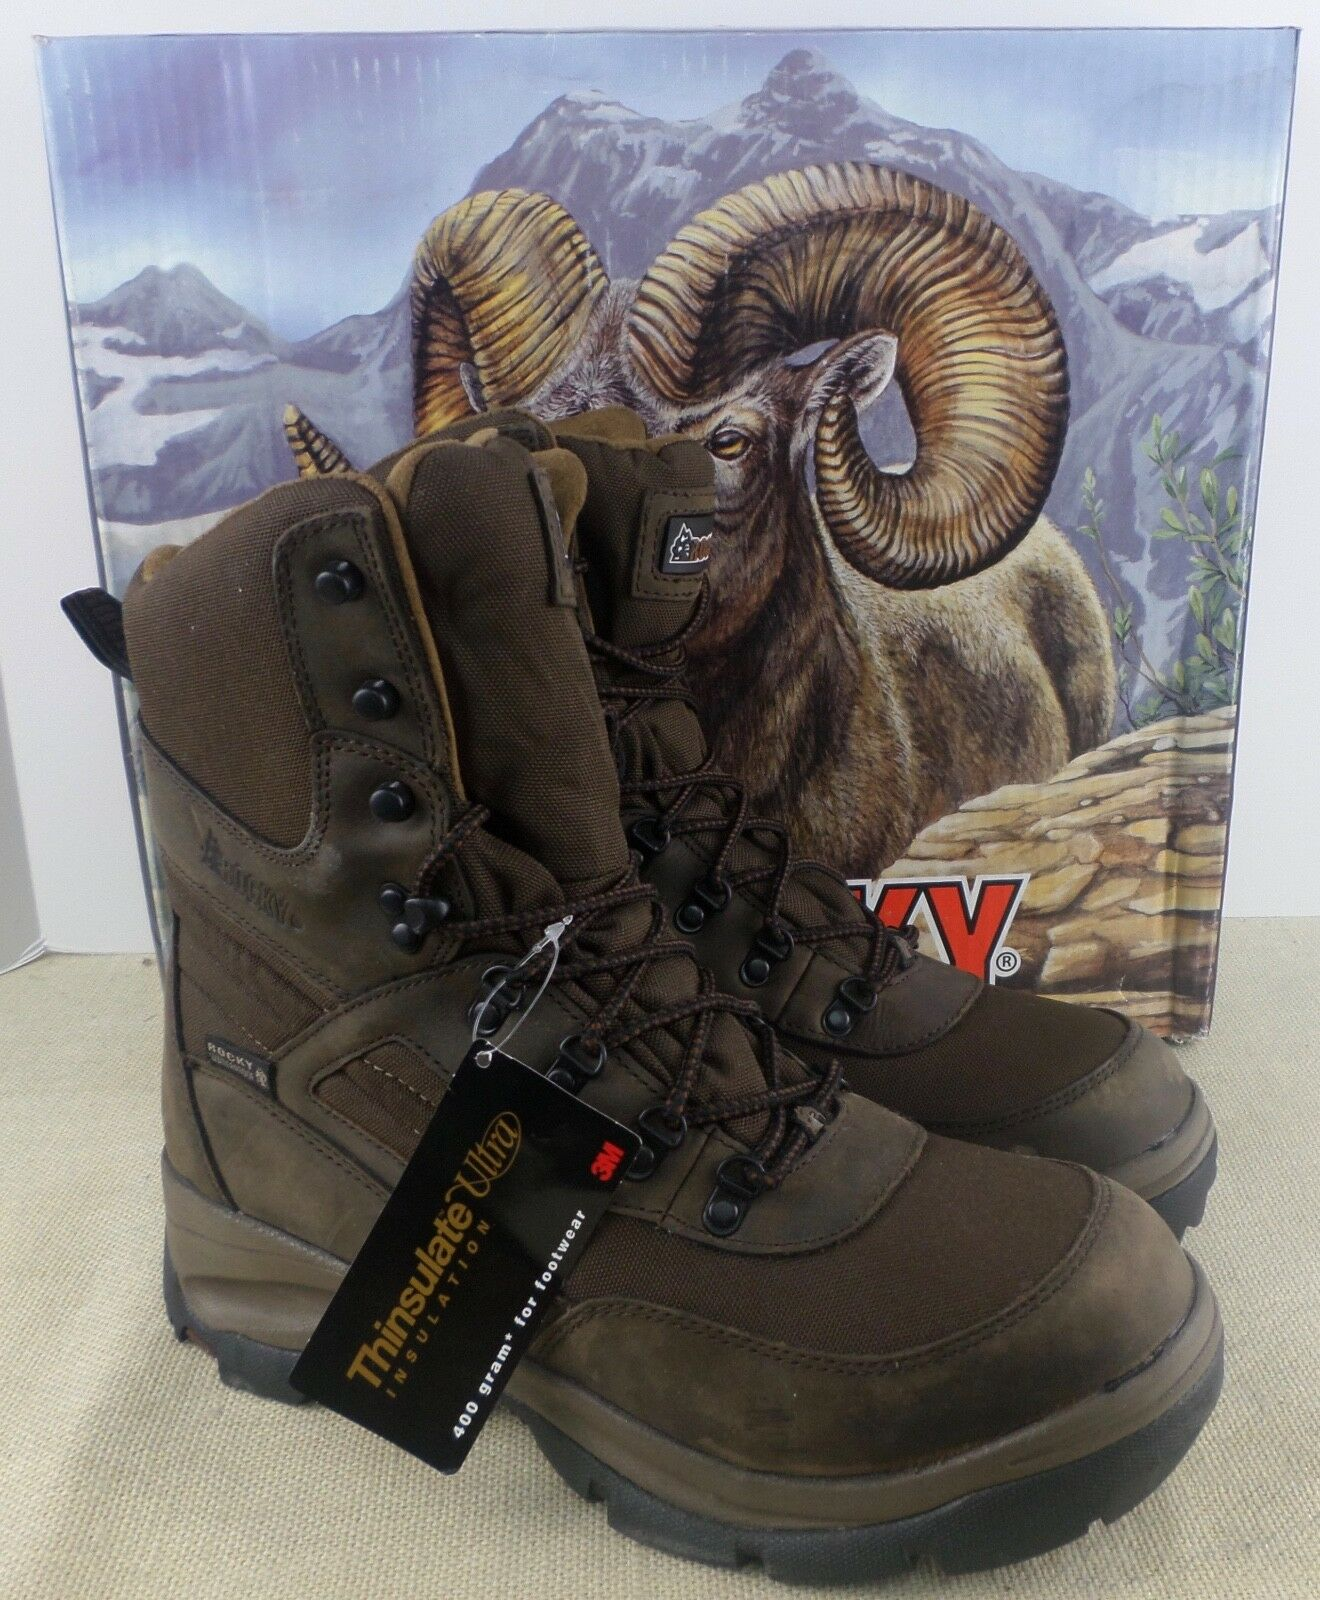 ROCKY 4763 ERGOTUFF MEN'S BROWN LEATHER INSULATED BOOTS SIZE 9.5M NEW IN BOX